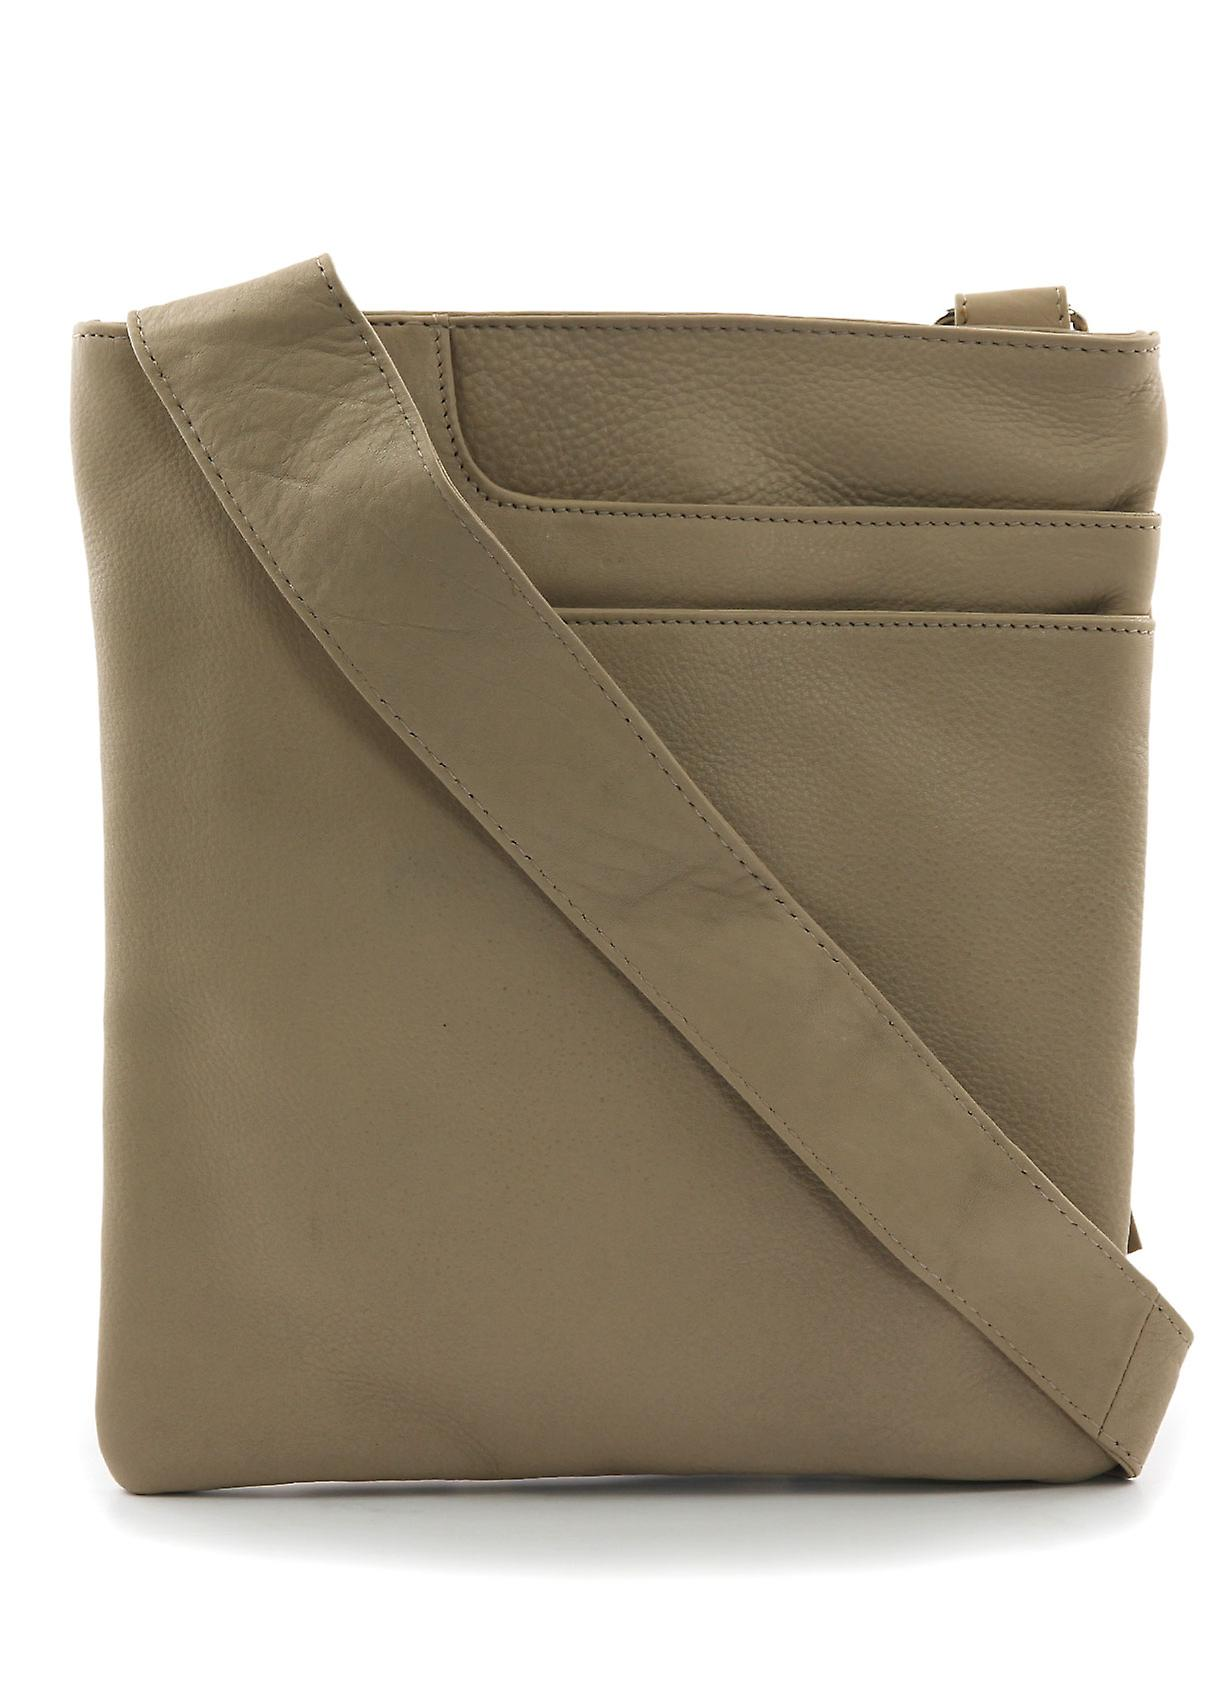 Alexis Leather Across Body Pocket Bag in Almond